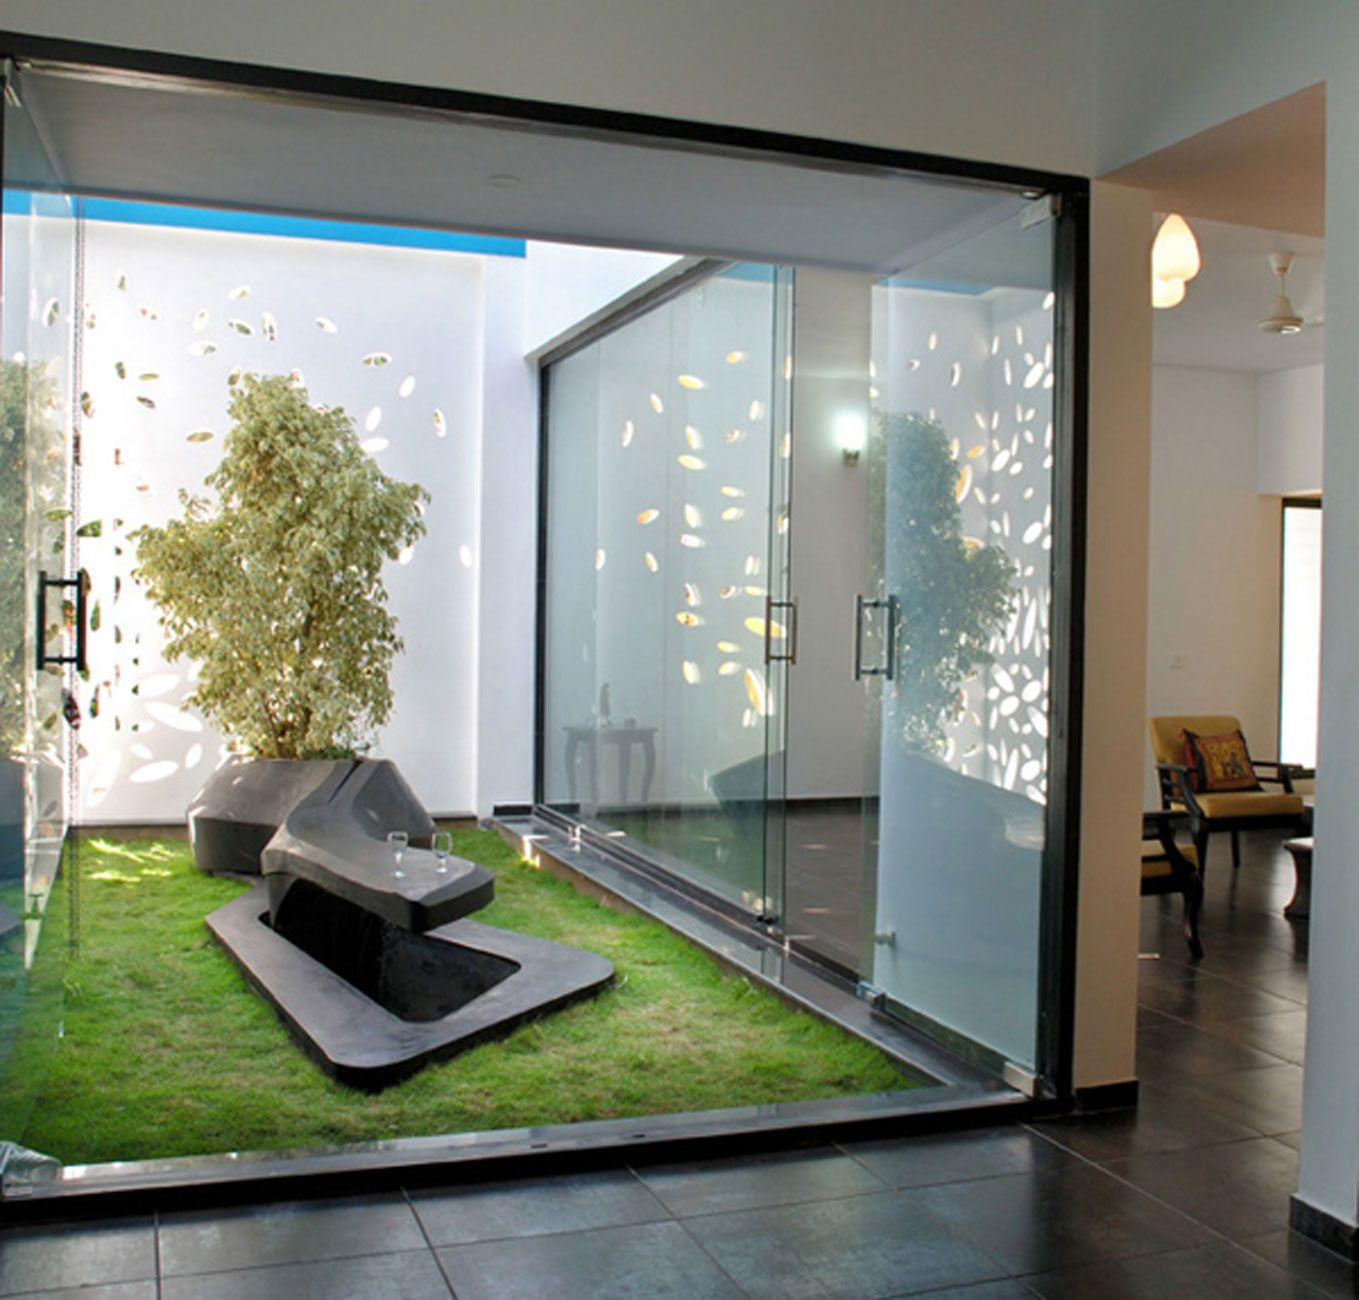 1000+ images about Sub deck indoor courtyard on Pinterest - ^